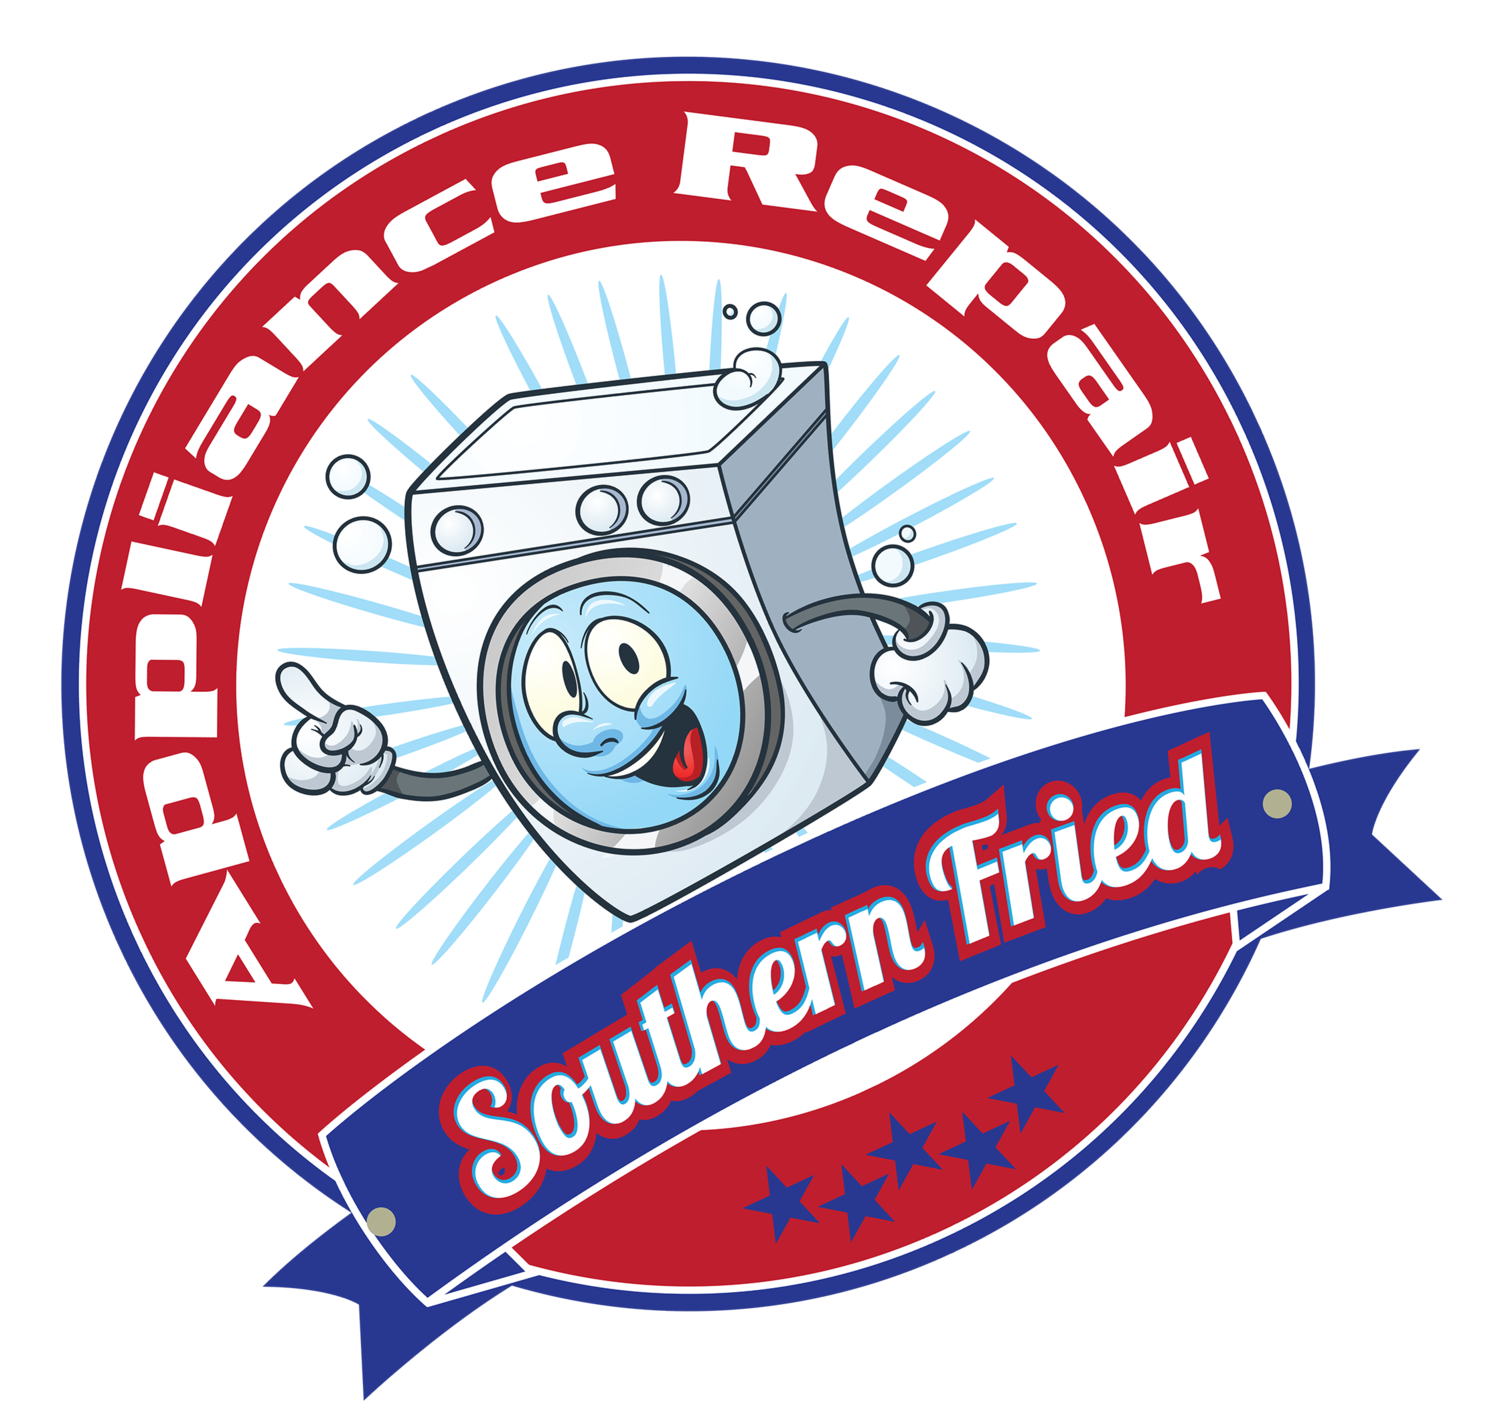 Southern Fried Appliance Repair